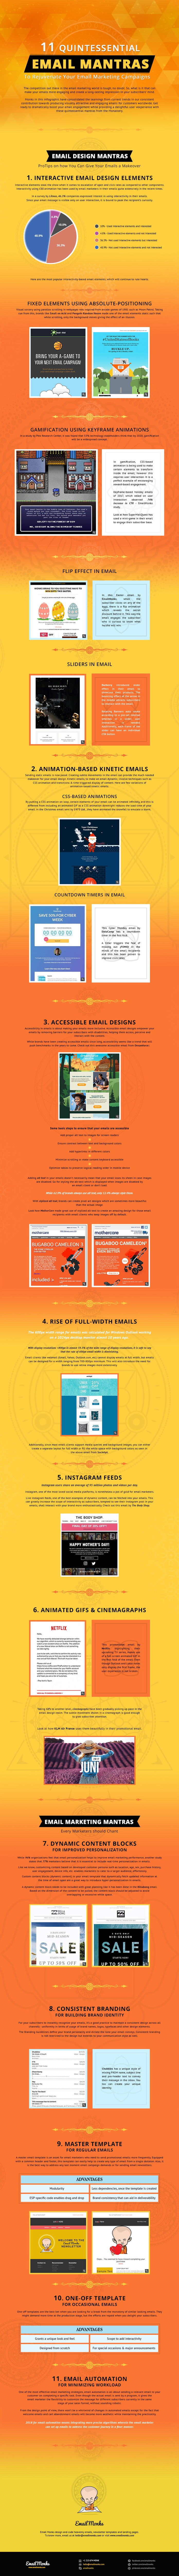 Email Design and Marketing Mantras 2018